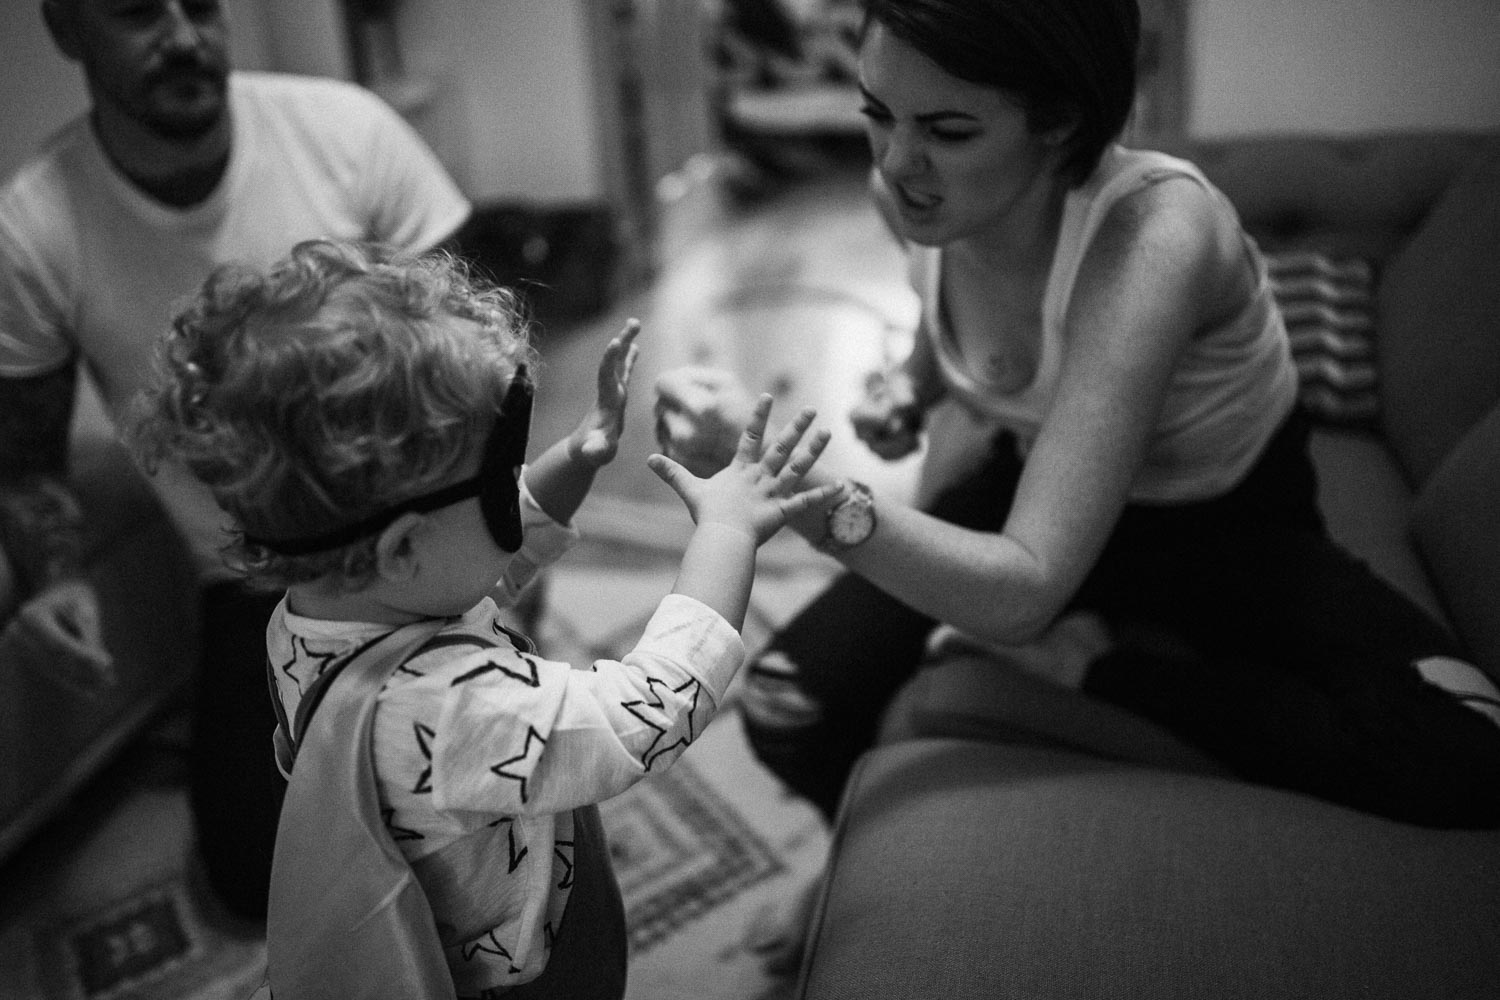 candid-black-and-white-photo-little-boy-in-batman-costume-pretend-fighting-with-mom-slc-utah